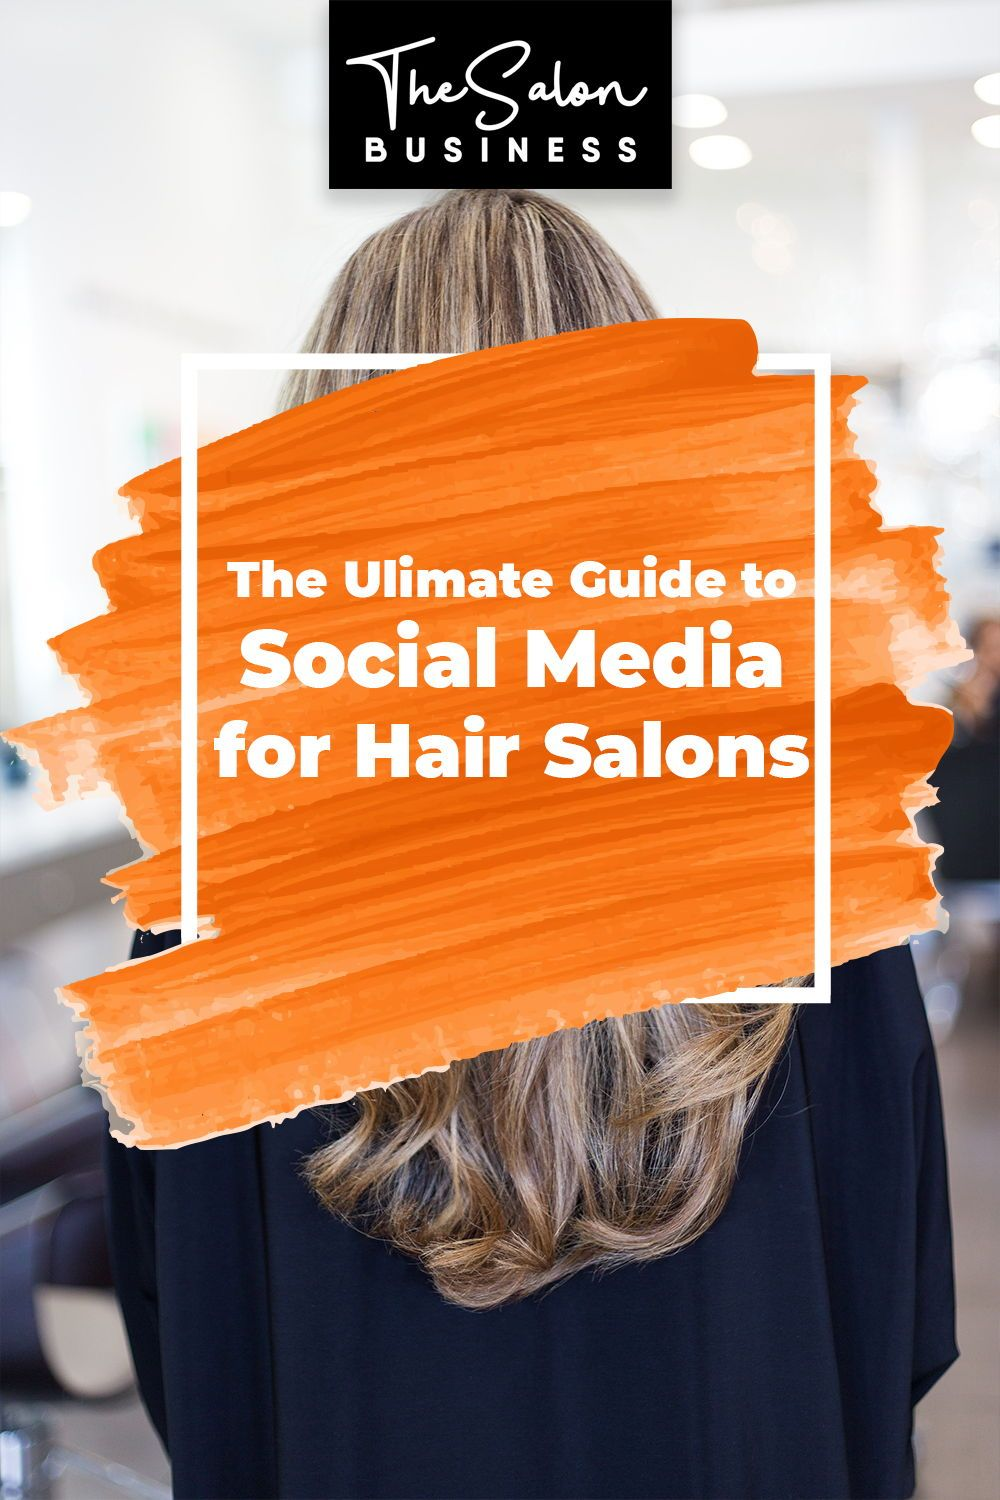 Salon social media post ideas and more for your hair salon. Get